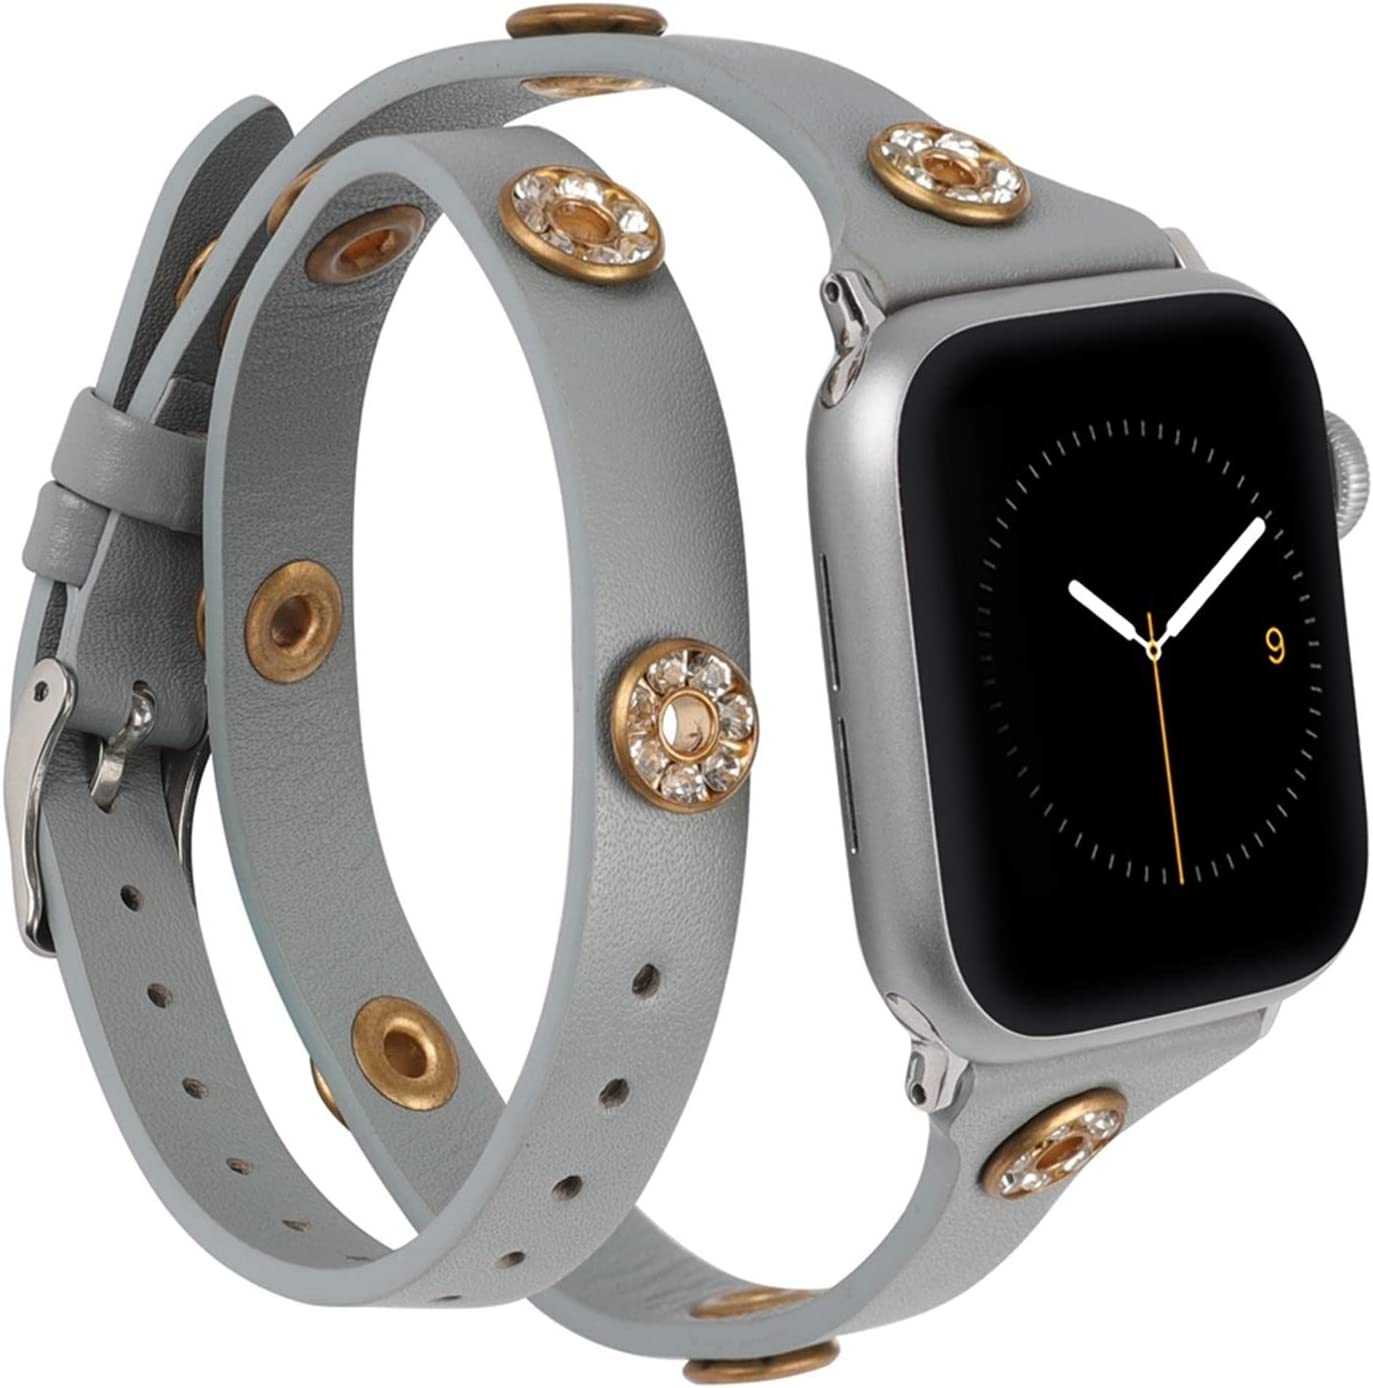 Moolia Compatible with Apple Watch Bands 40mm 38mm Women, Slim Double Wrap iWatch Bands with Bling Studs Straps Bracelet Accesssories for Apple Watch Band Series 6/SE/5/4/3/2/1, Gray